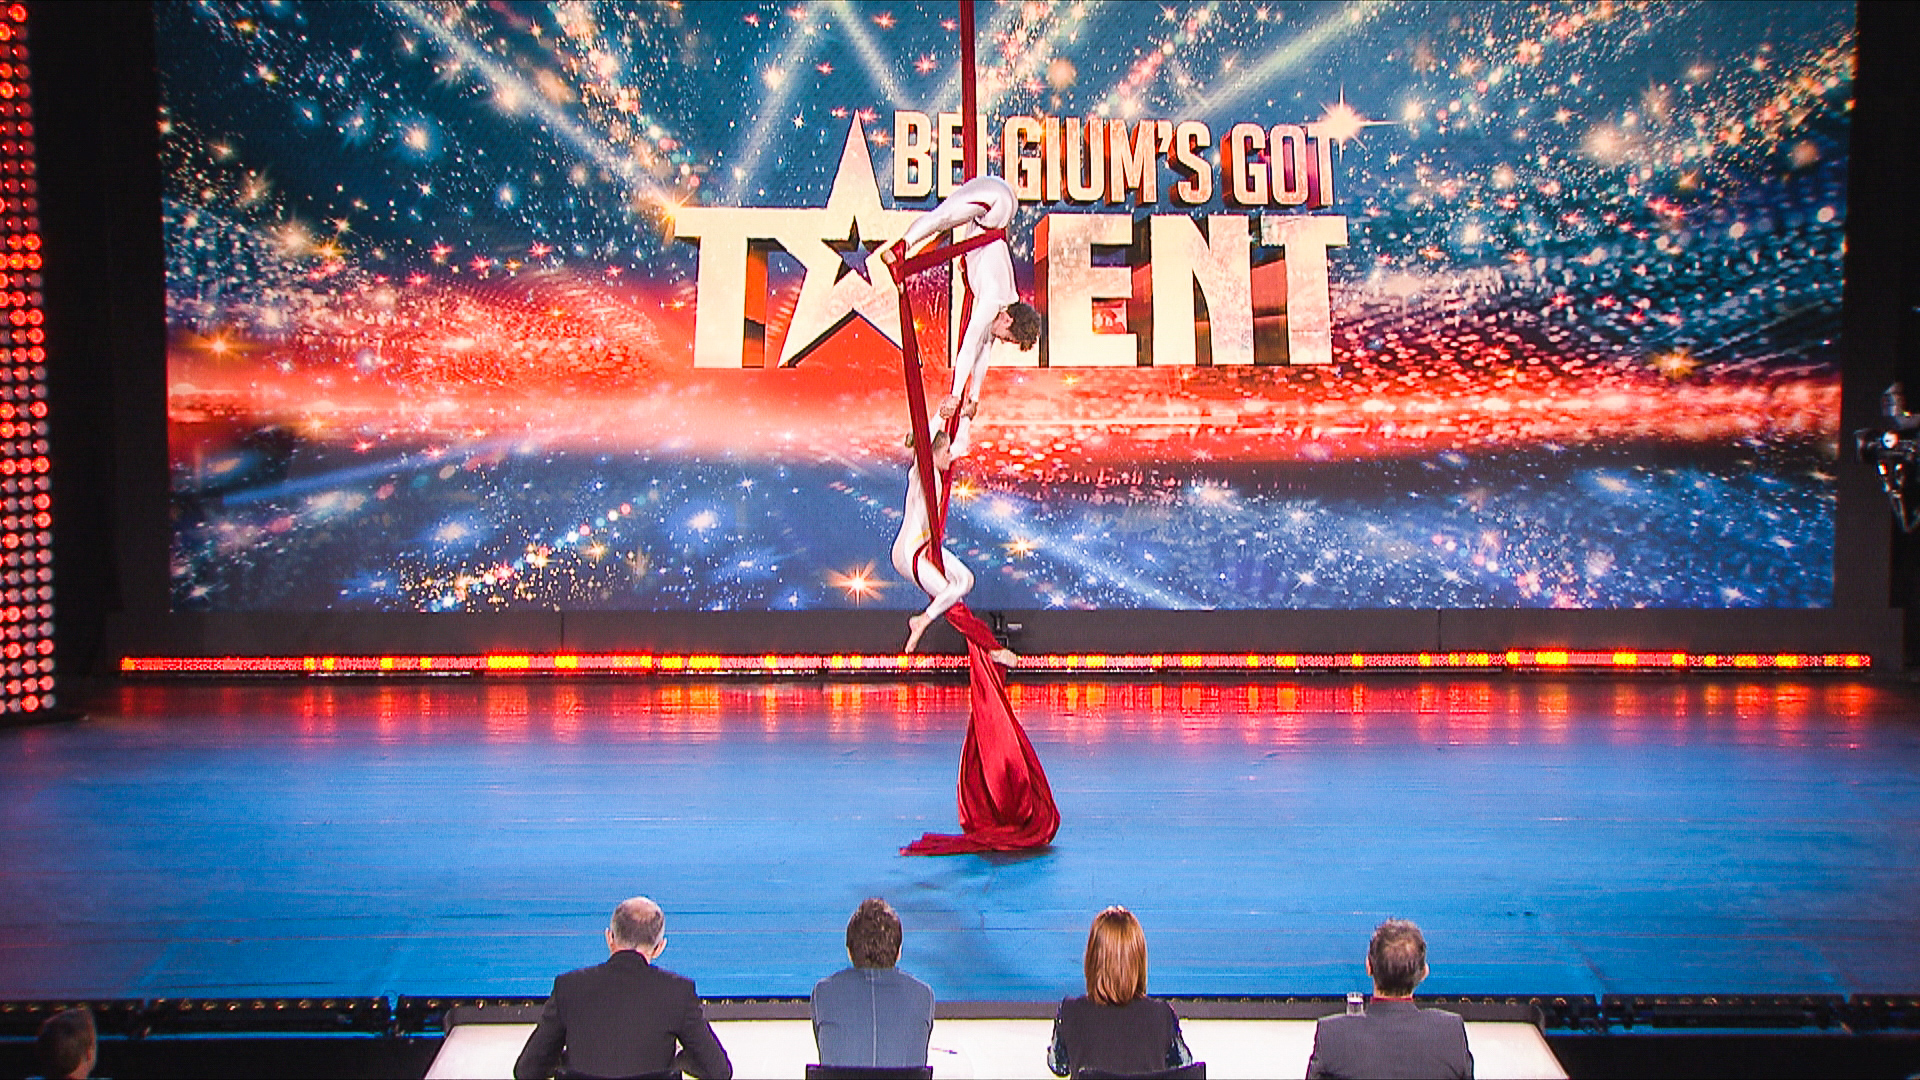 Belgium's Got Talent